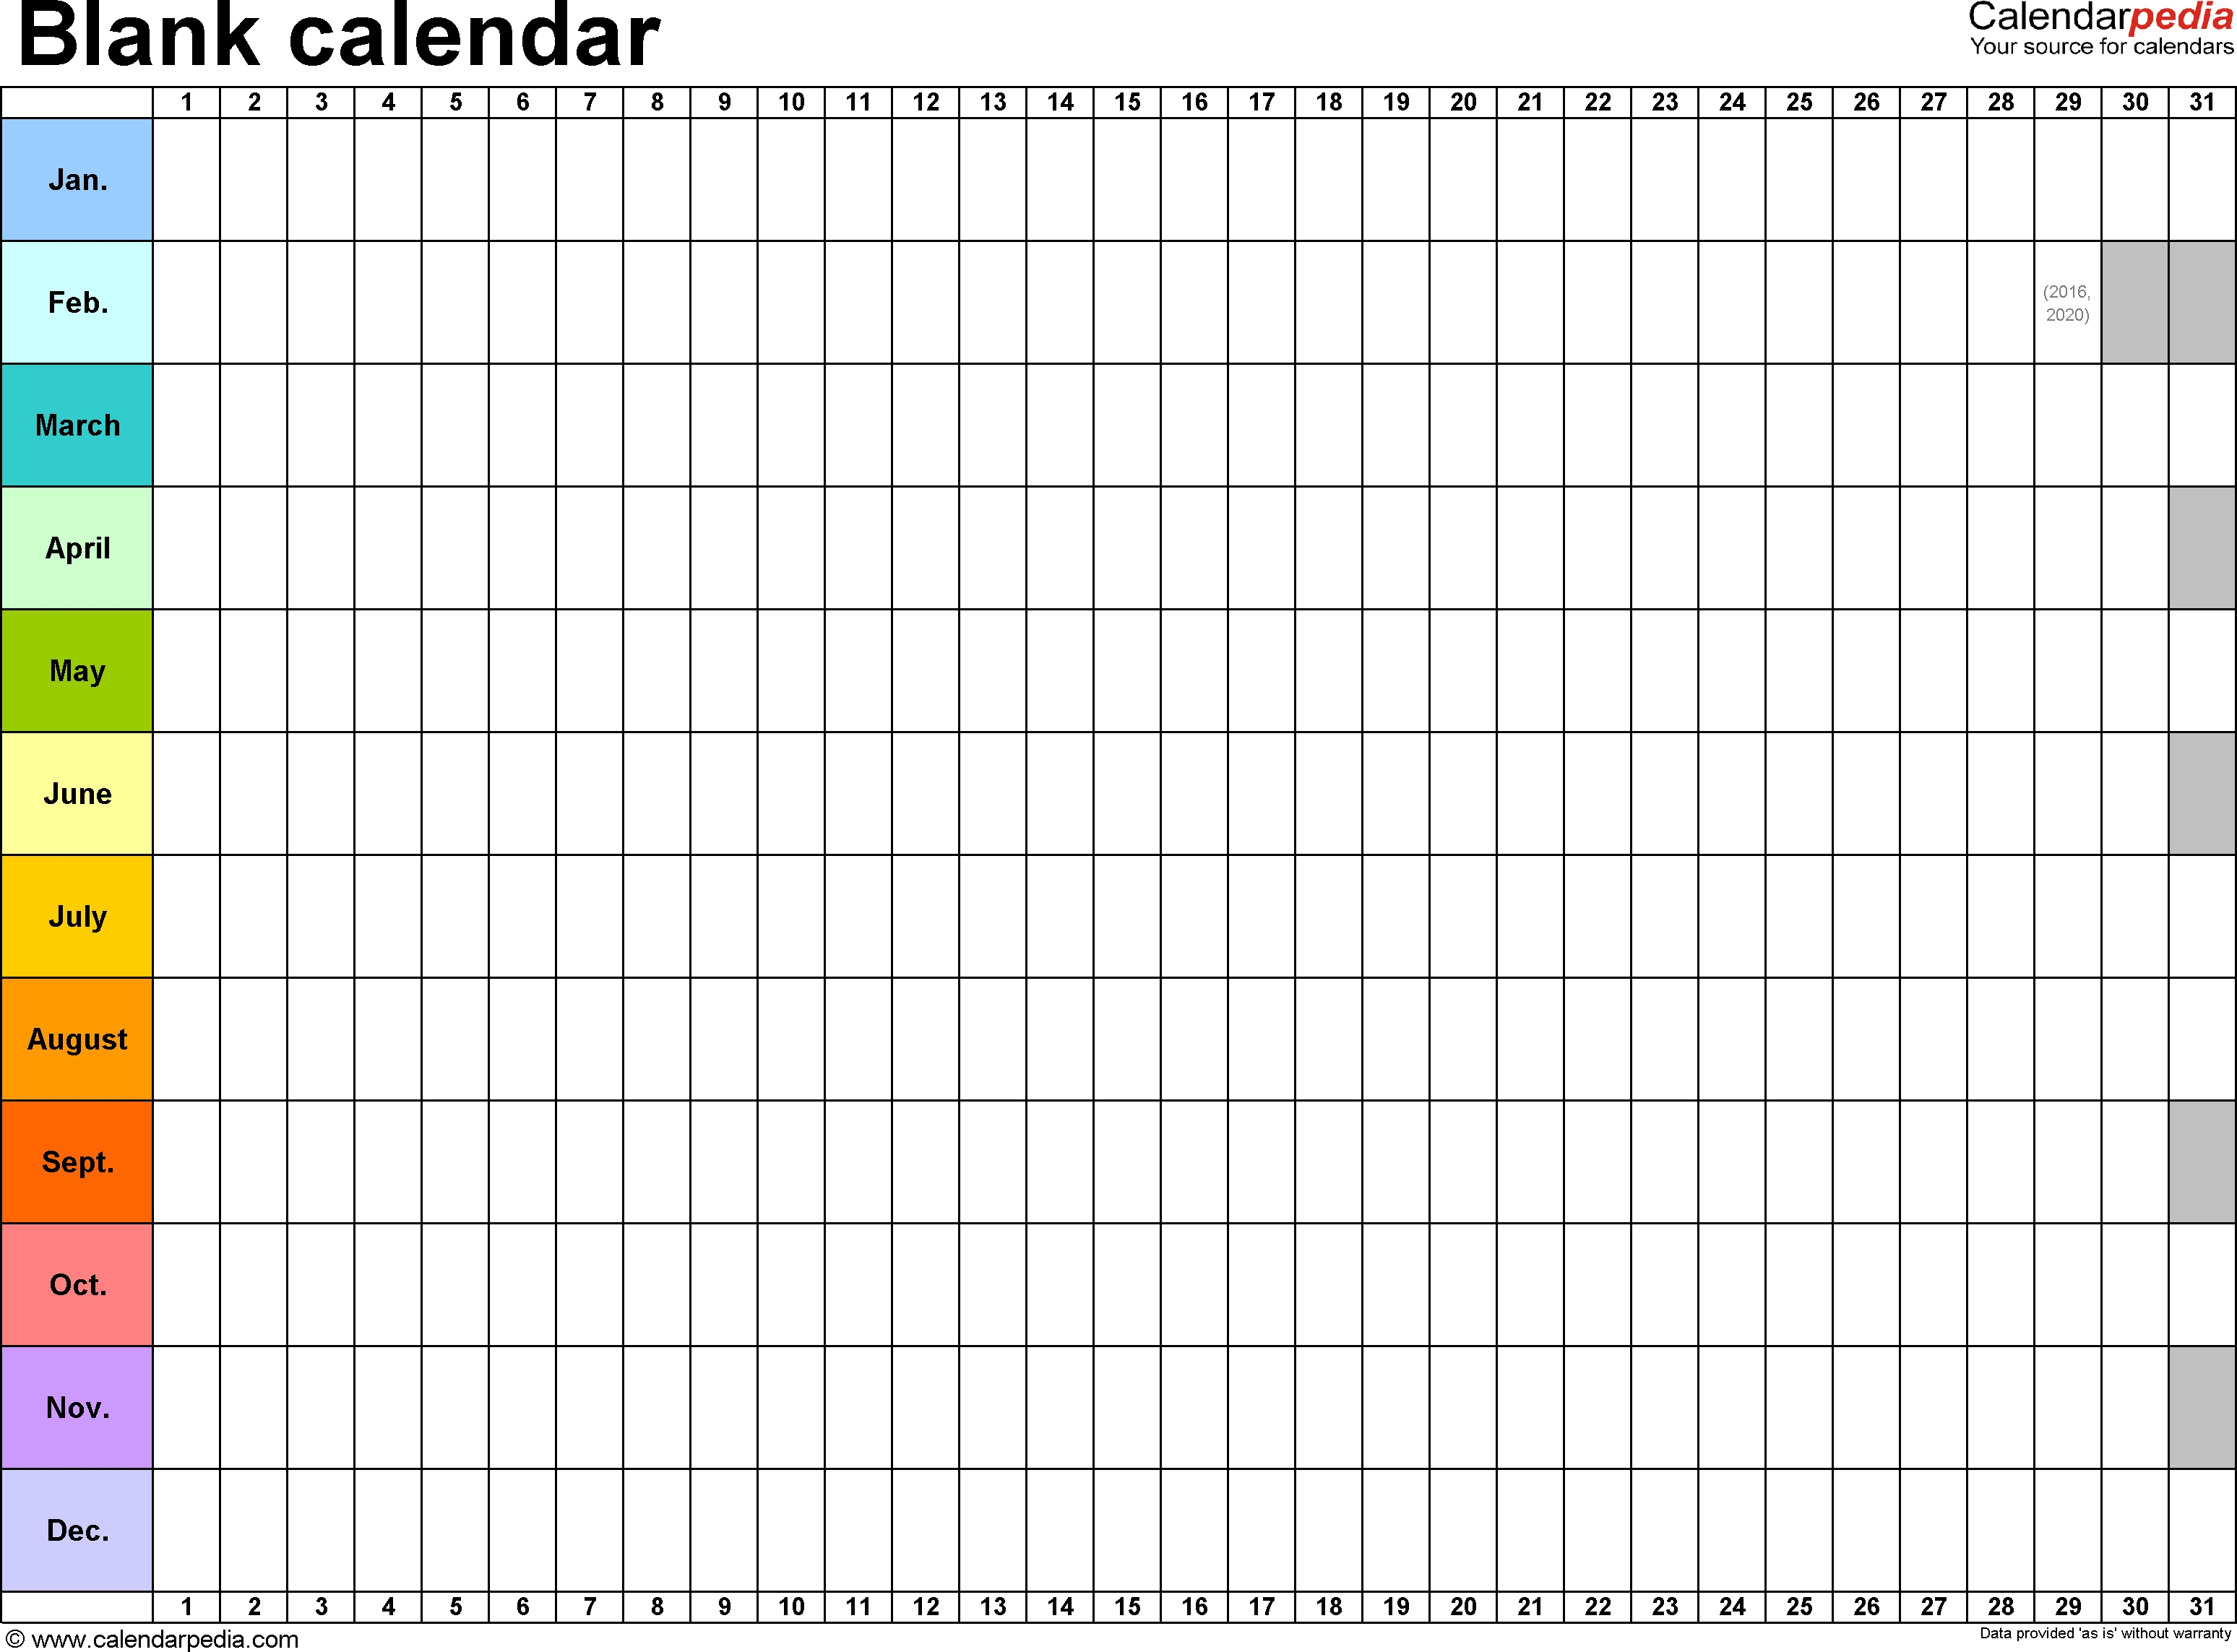 Blank Calendar - 9 Free Printable Microsoft Word Templates for 12 Month Calendar On One Page